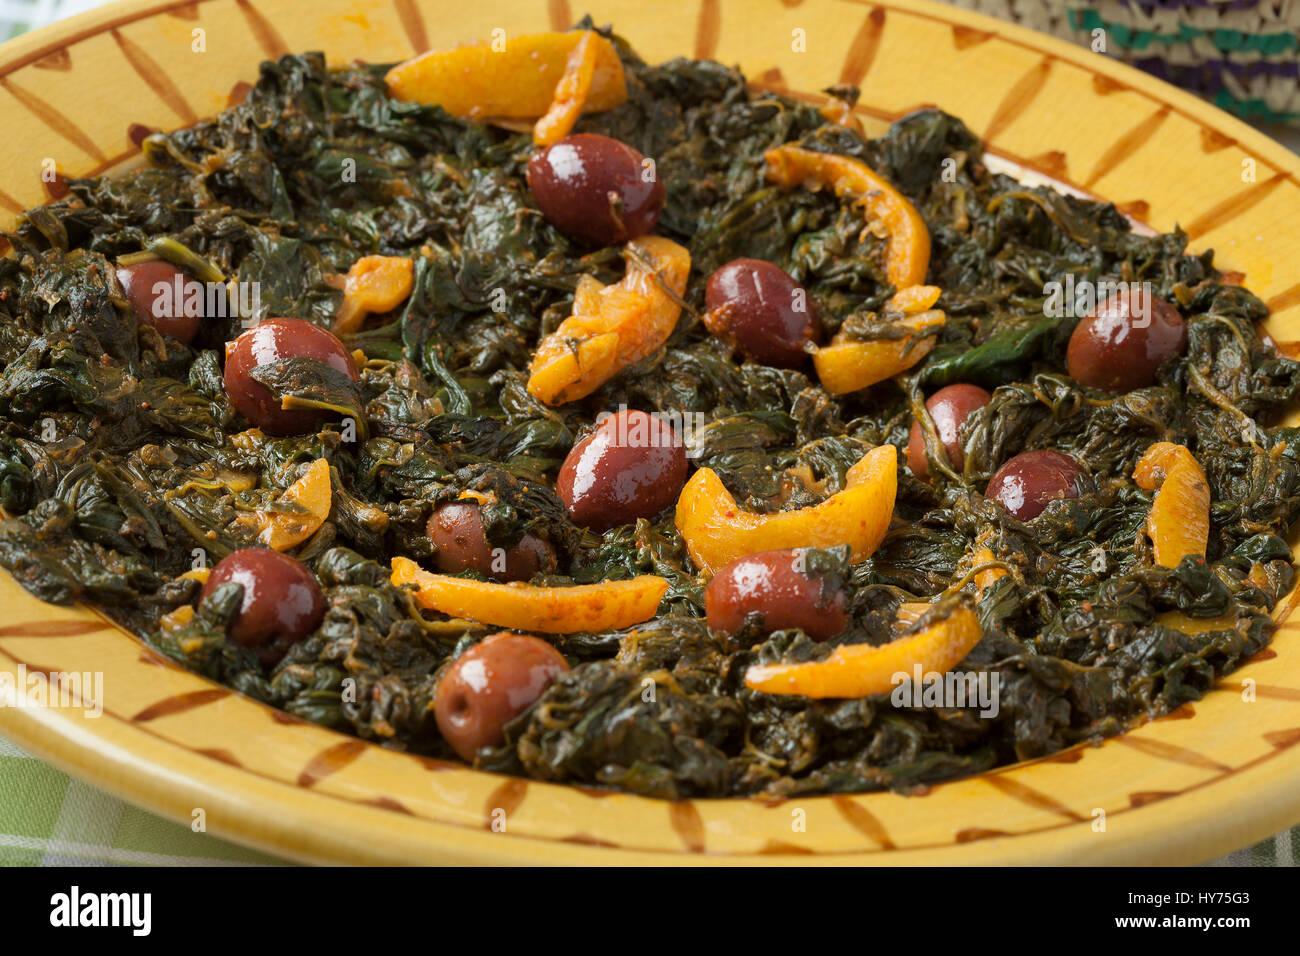 Traditional Moroccan dish with spinach, olives and preserved lemon close up - Stock Image